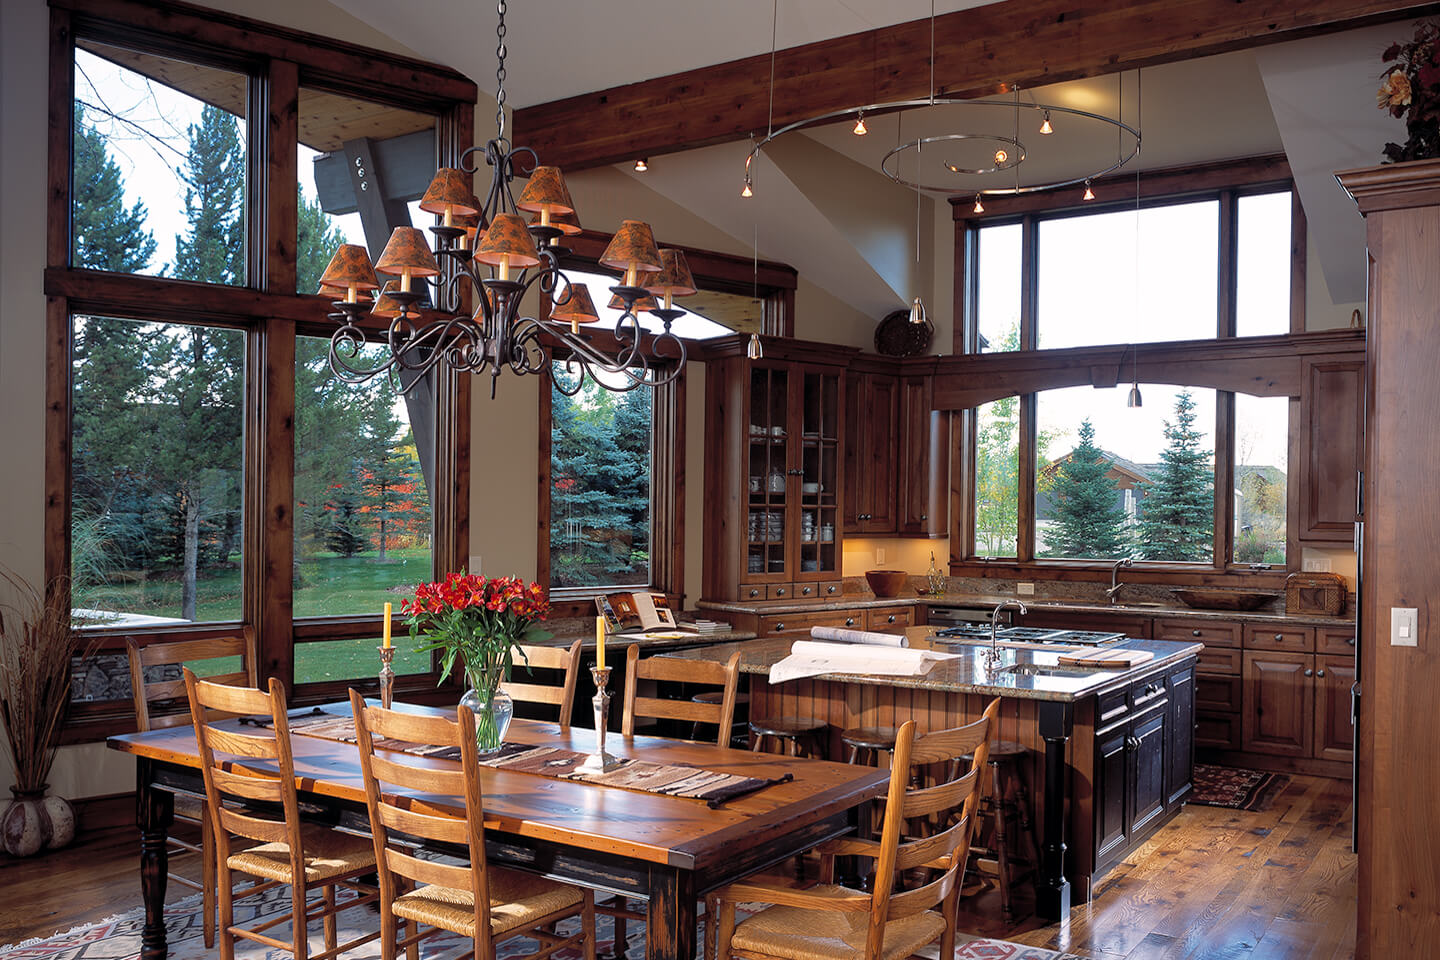 Dining room and kitchen with rustic and modern chandeliers